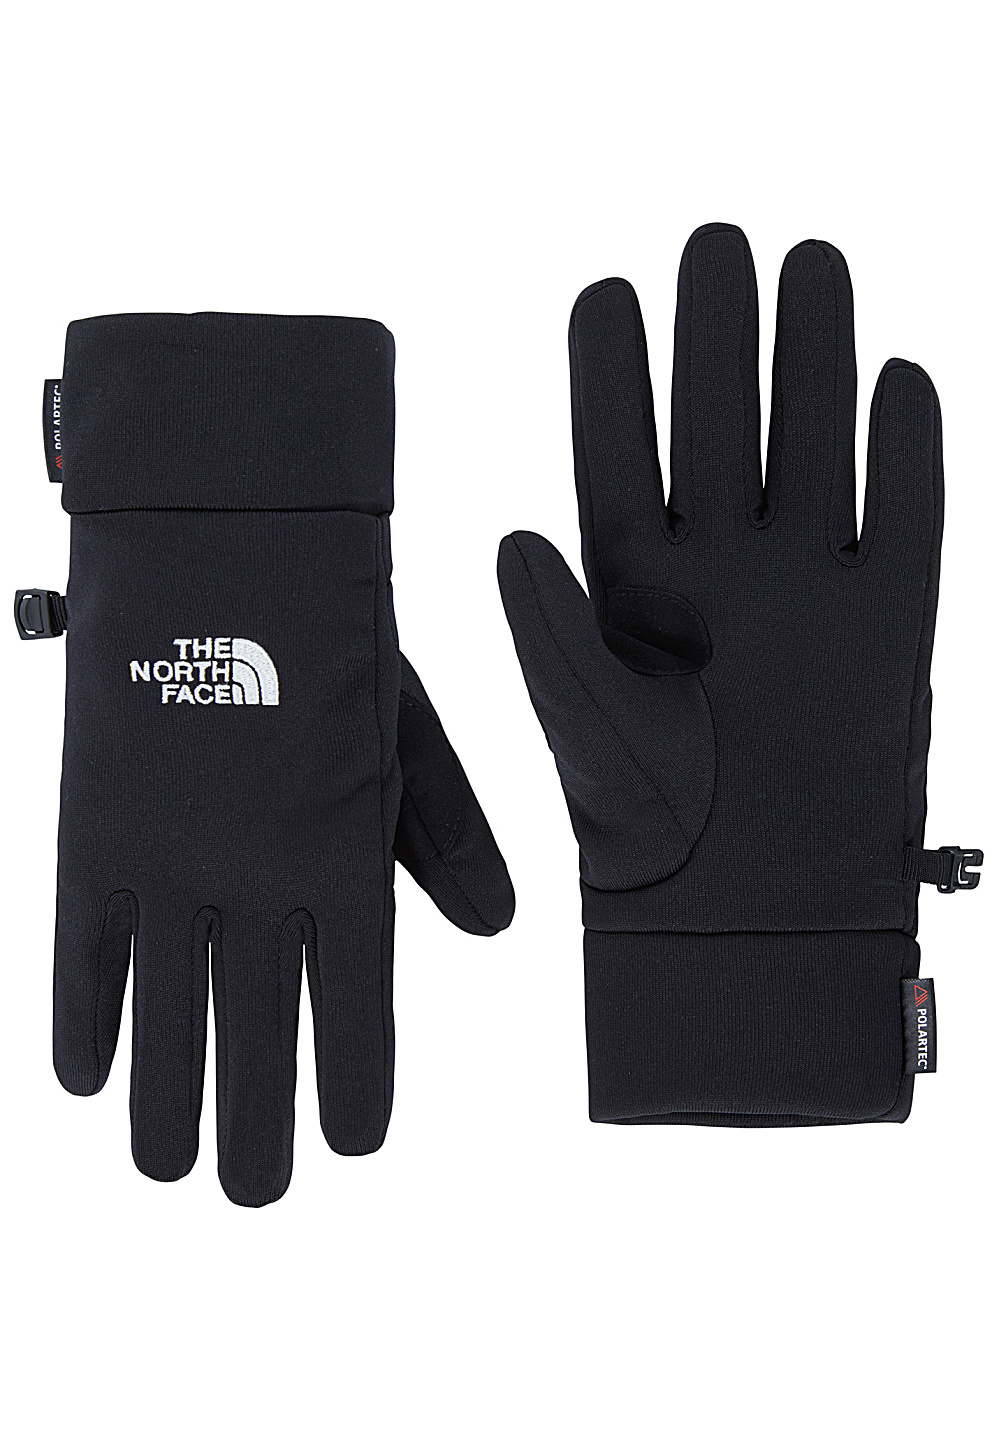 bdf741a59 THE NORTH FACE Power Stretch - Gloves for Men - Black - Planet Sports